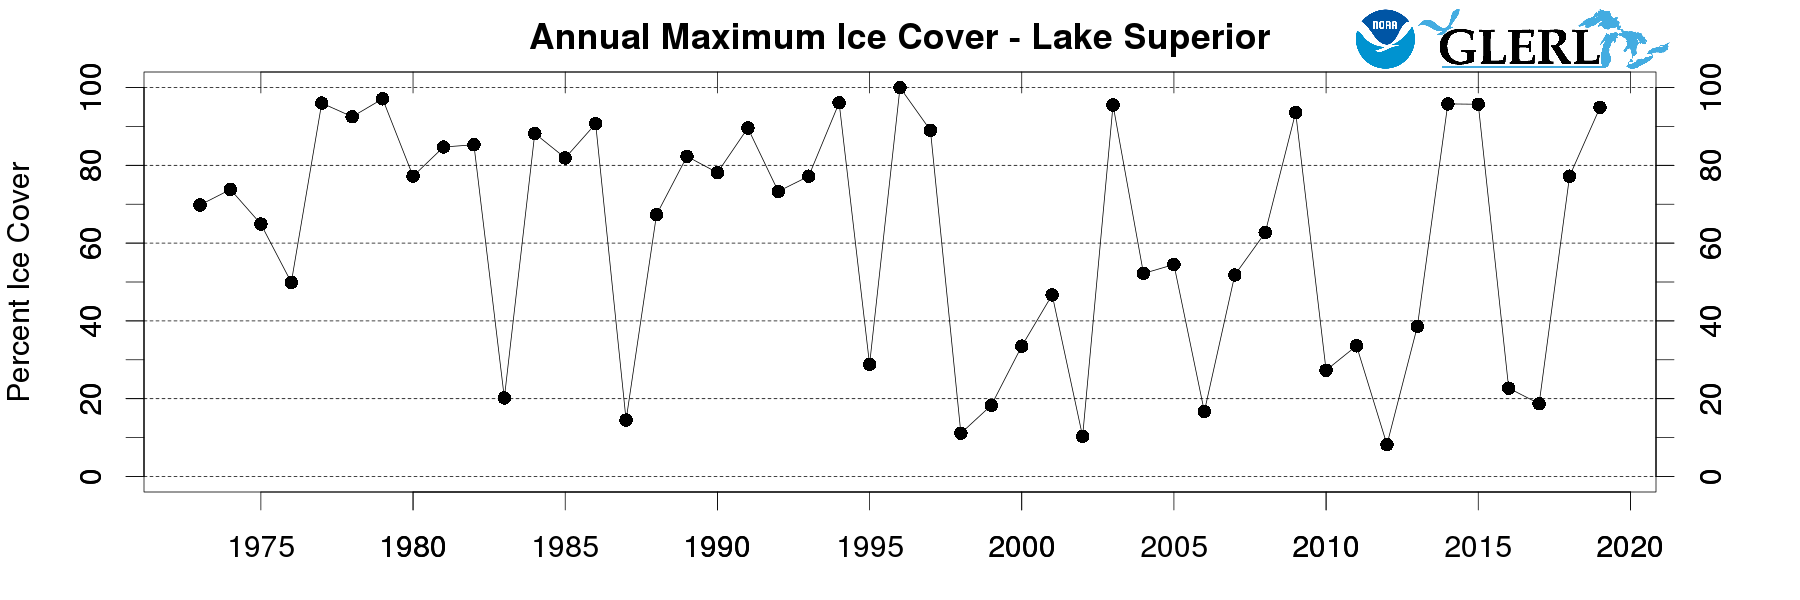 Lake Superior ice cover annual maximum